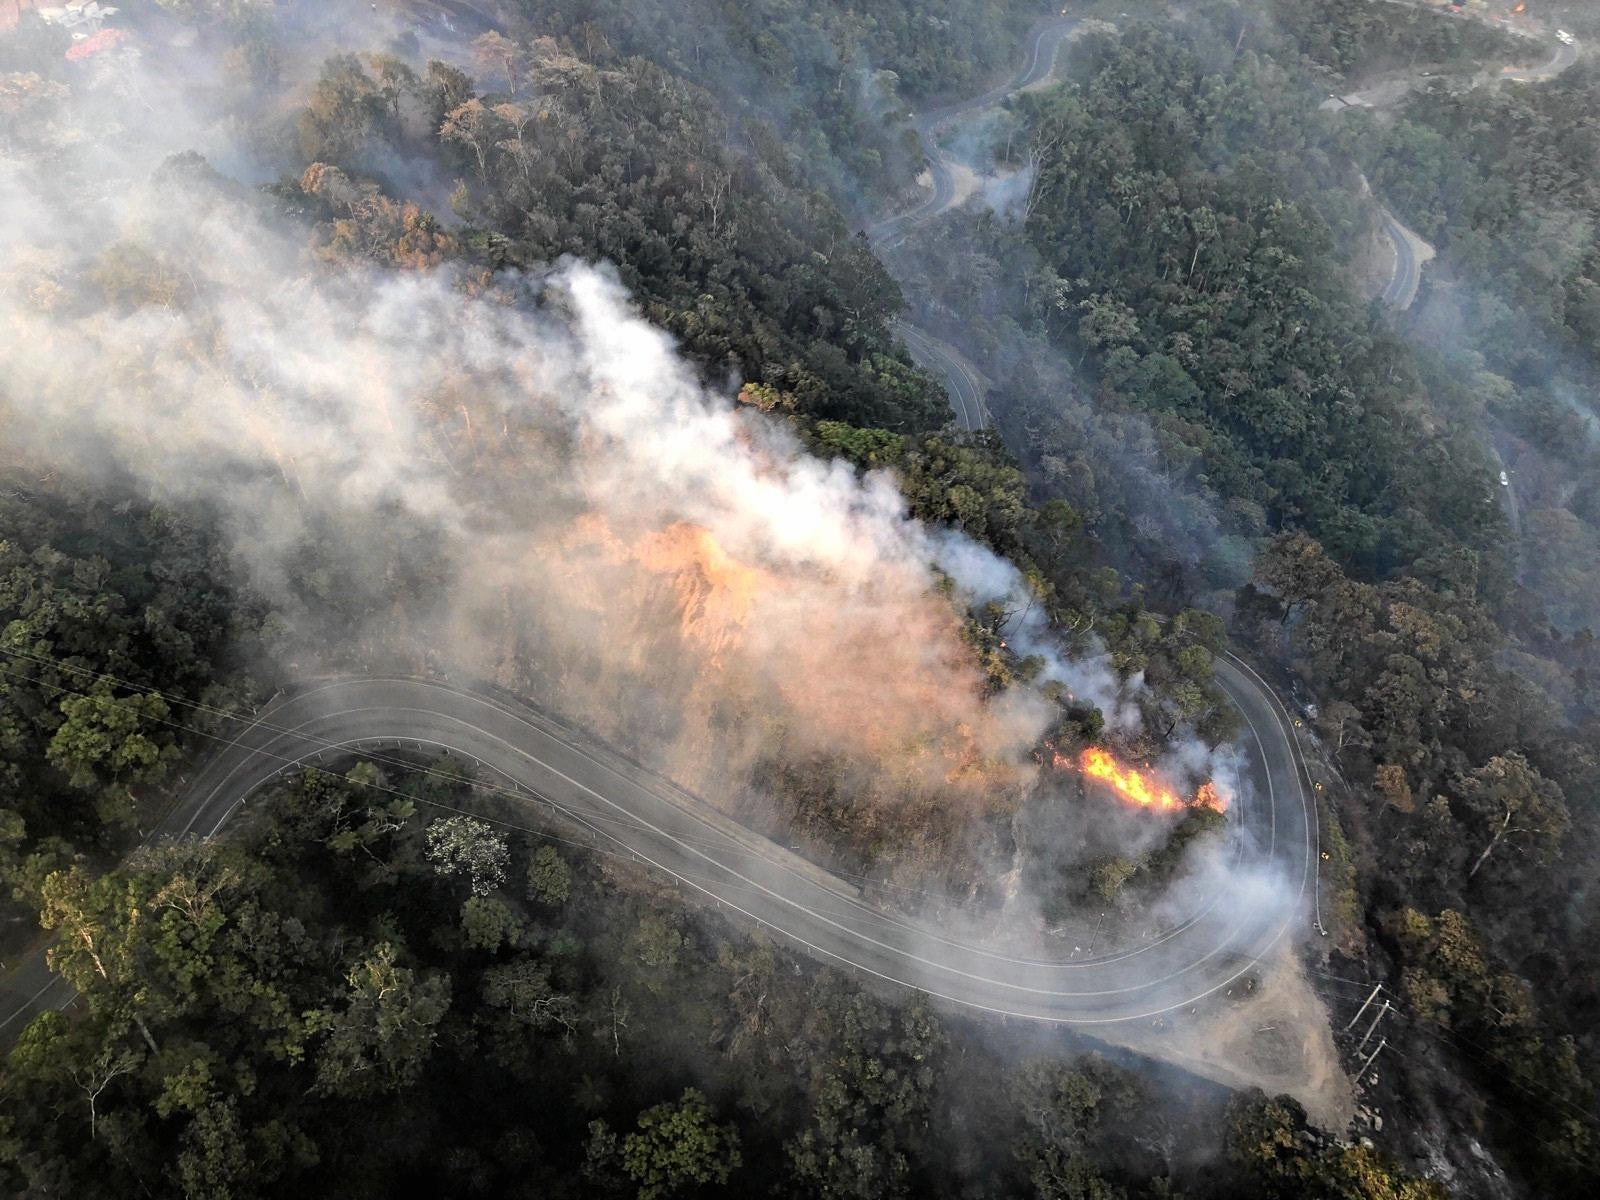 A bushfire that threatened the Eungella township and closed the Range Road in November.